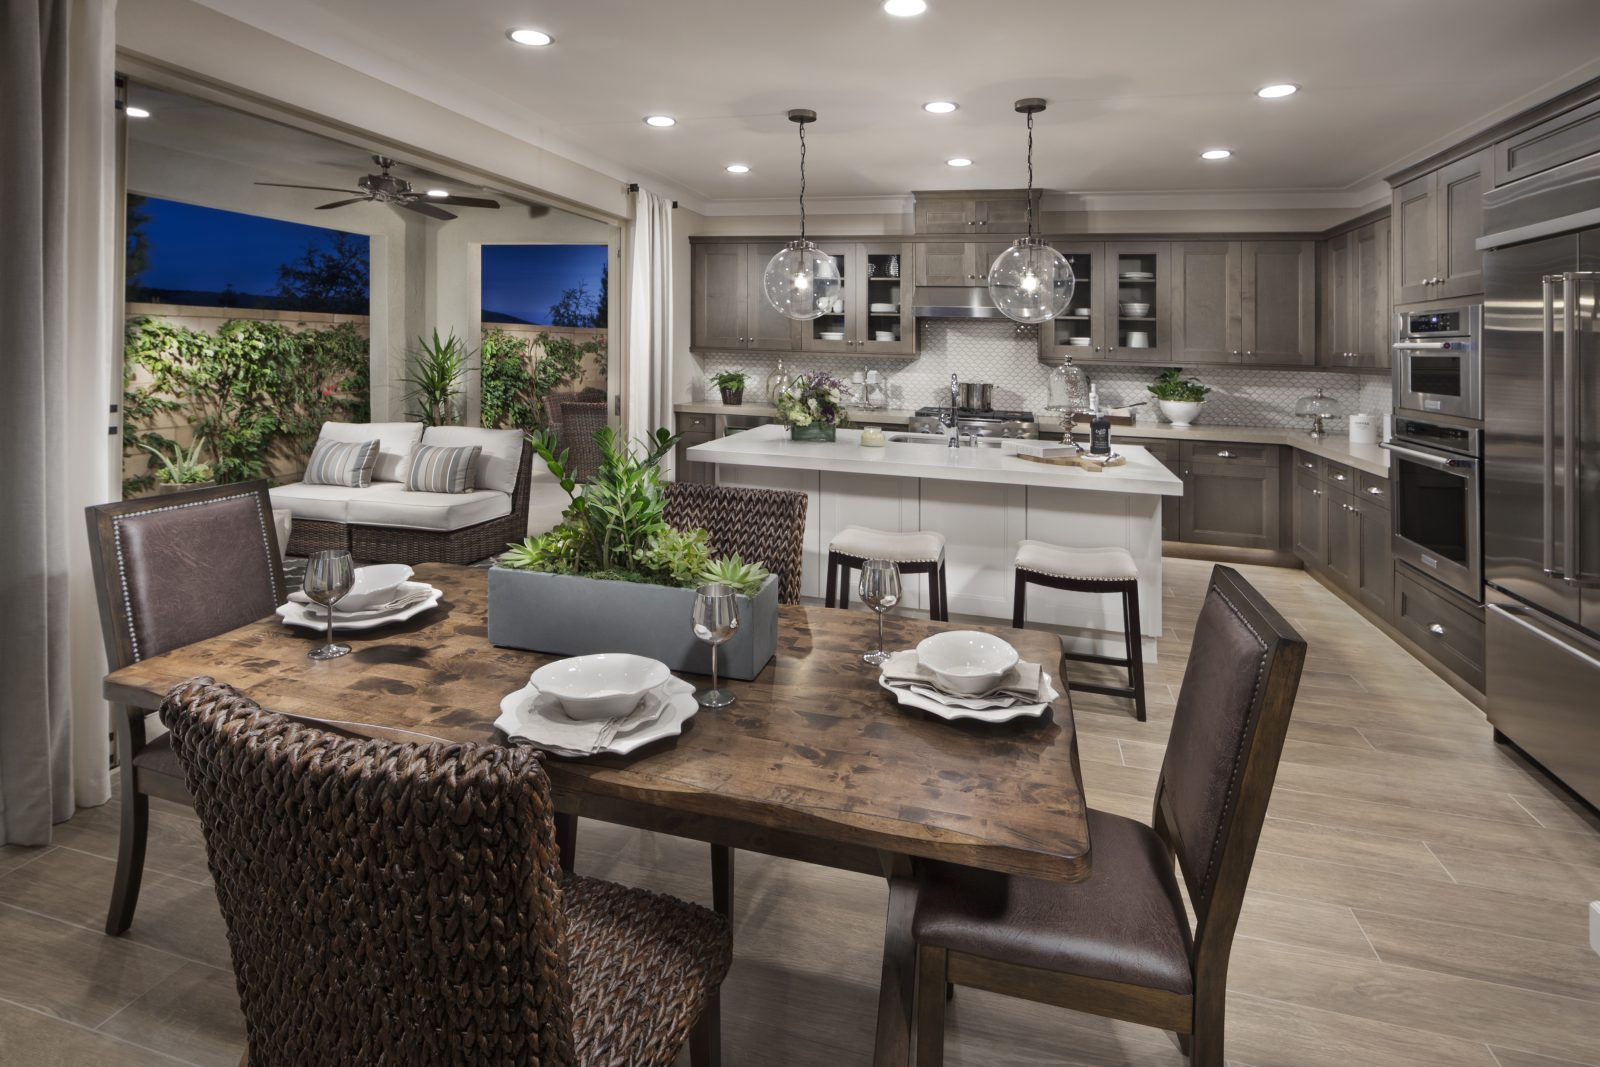 Kitchen and Outdoor Room in Irvine New Homes for Sale